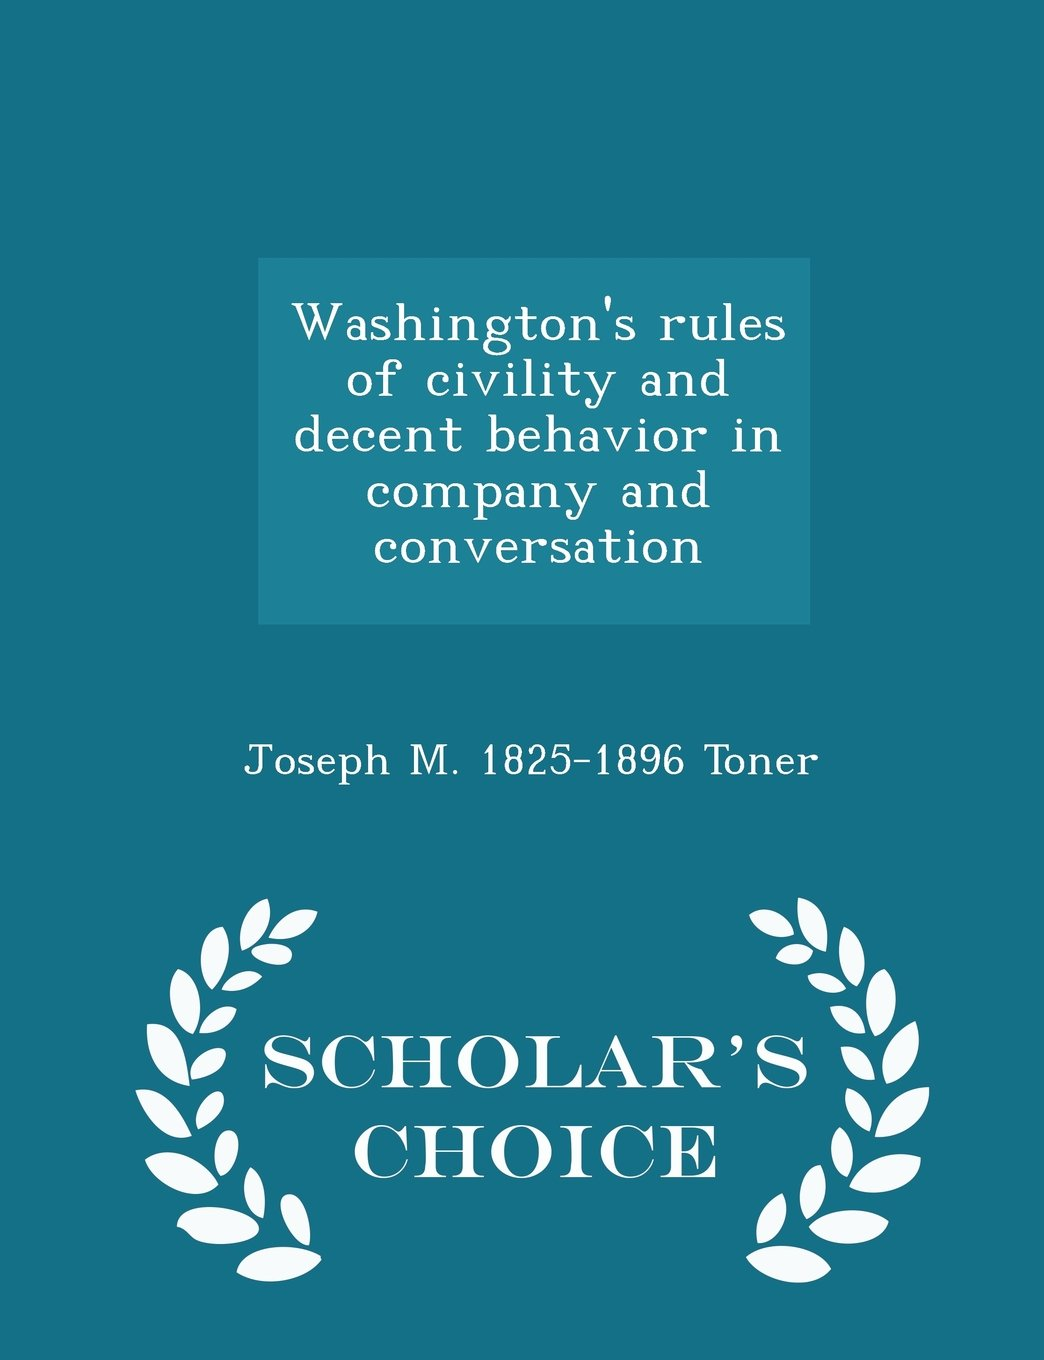 Download Washington's rules of civility and decent behavior in company and conversation  - Scholar's Choice Edition pdf